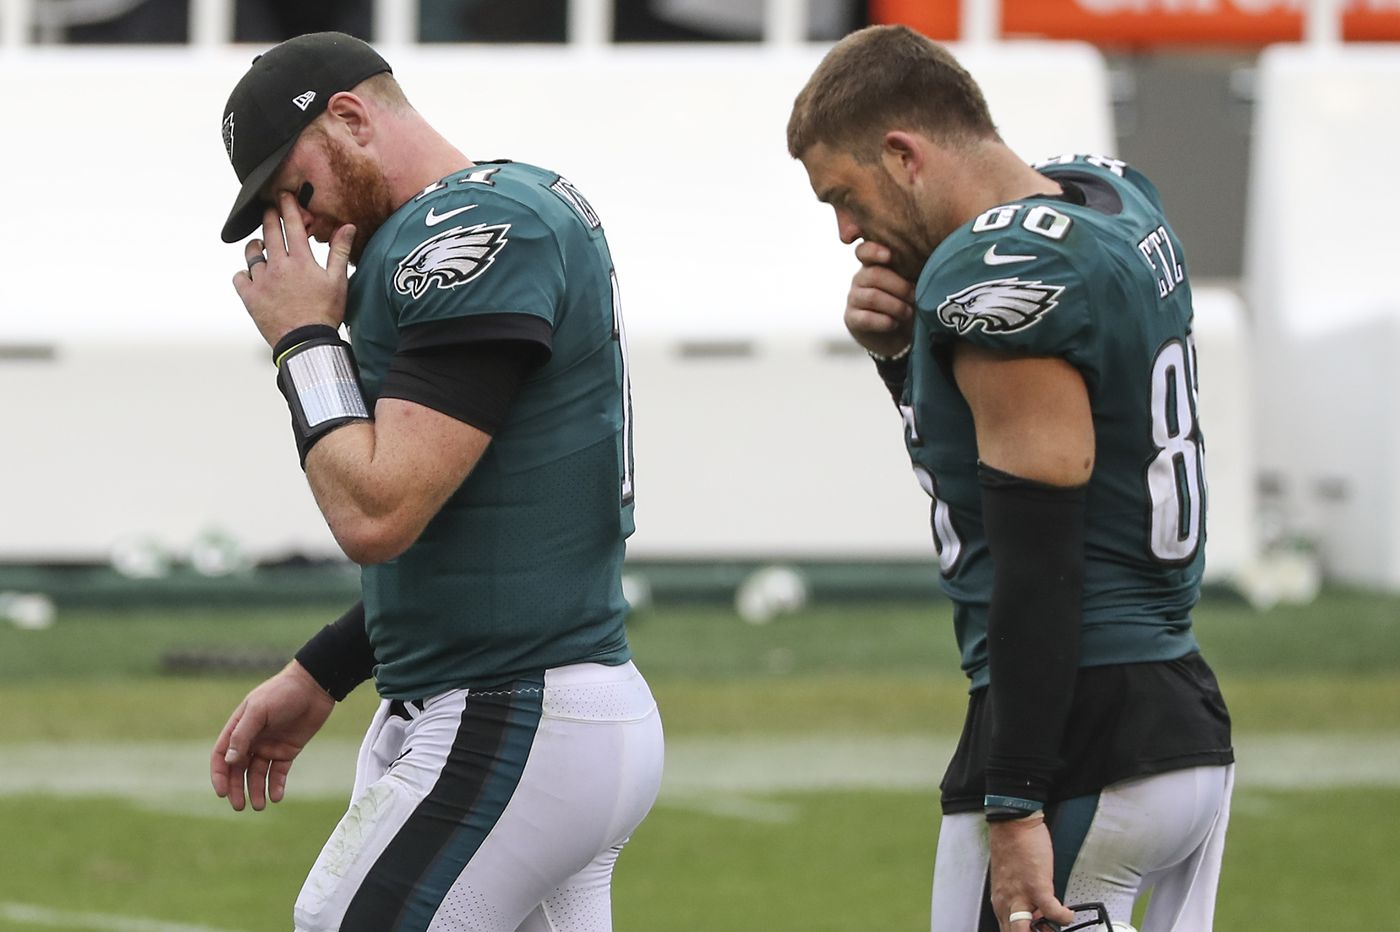 Eagles punt on chance to win, play for a 23-23 tie with winless Bengals. Is this as low as they can go?